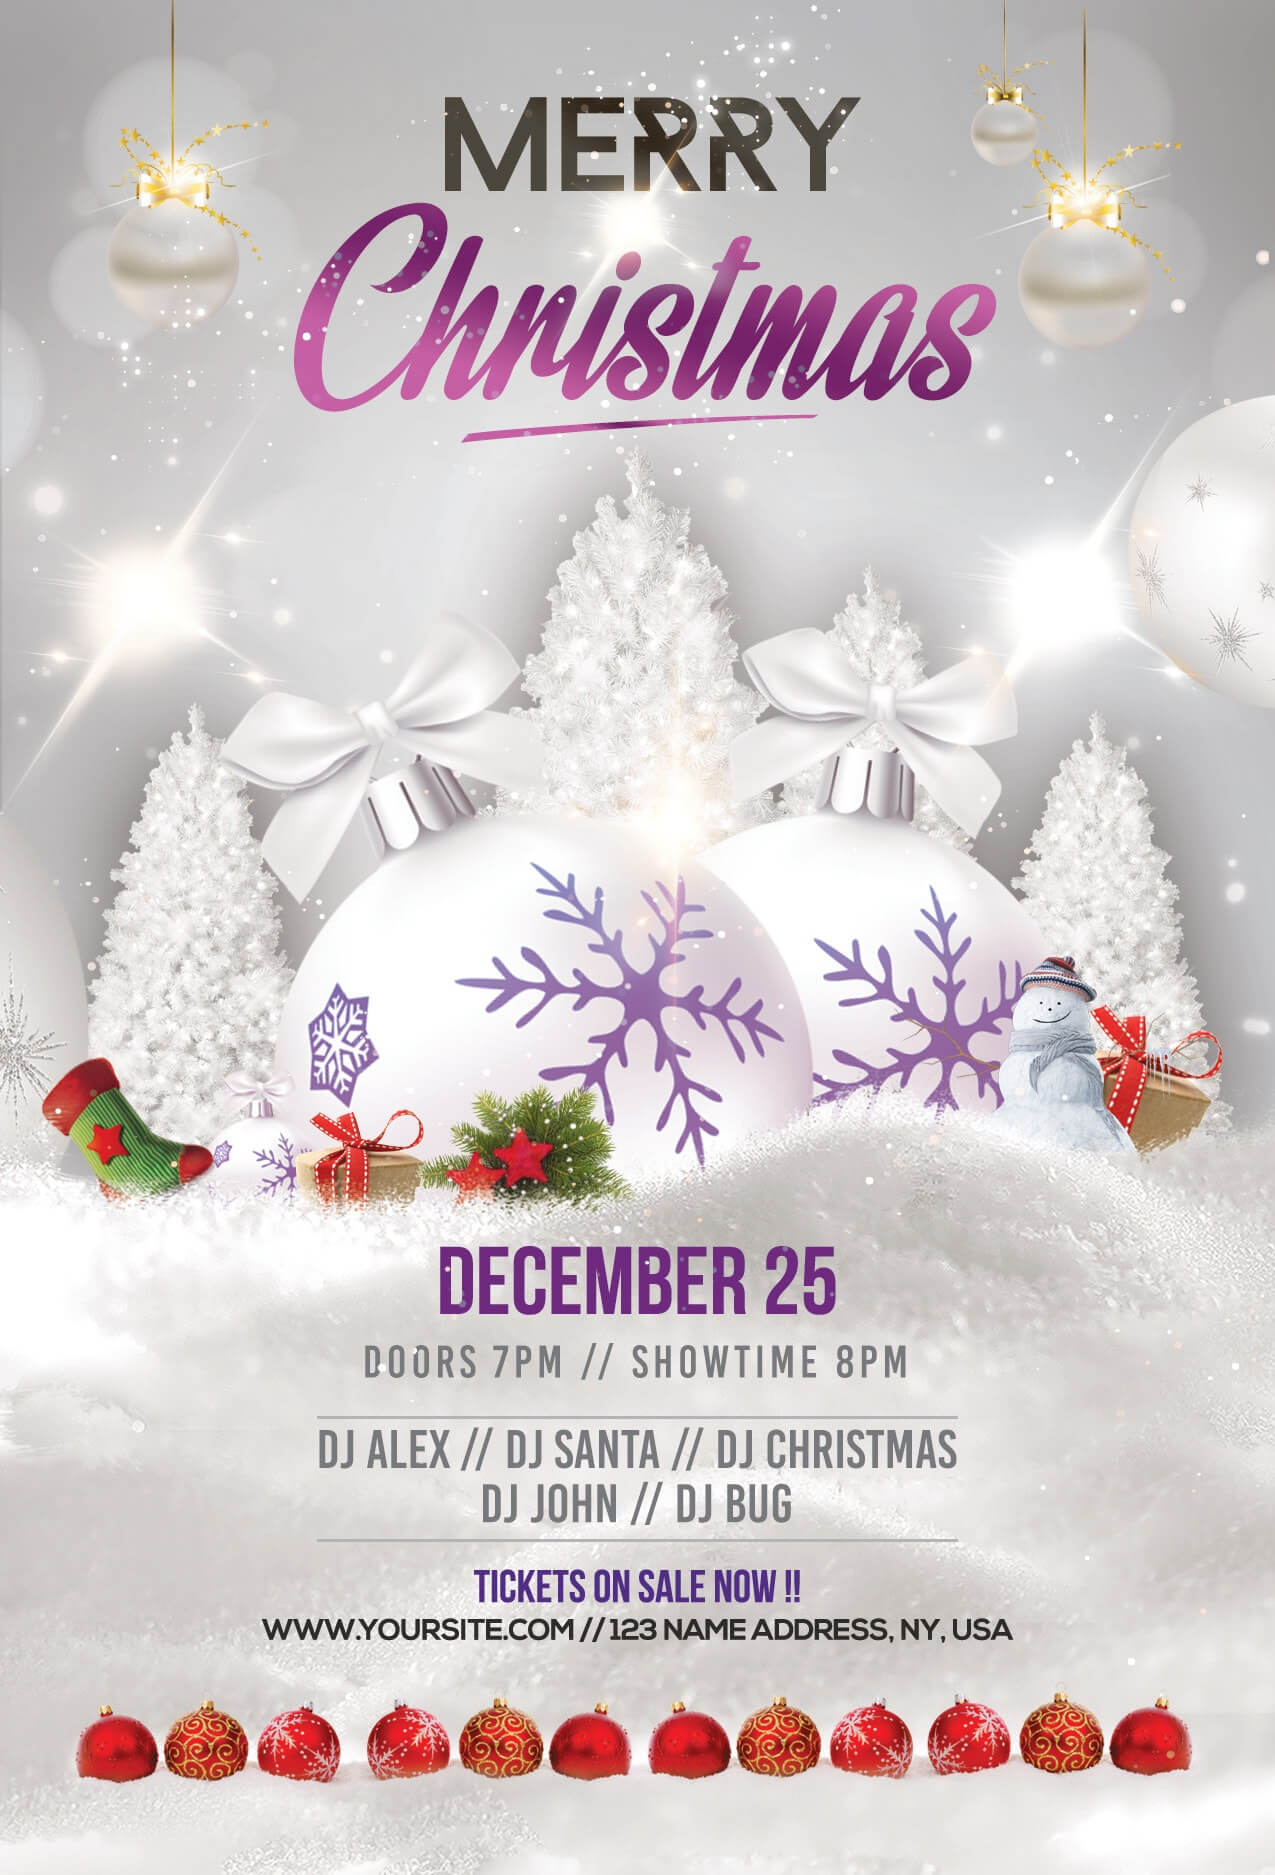 Merry Christmas & Holiday Free Psd Flyer Template - Free Psd Inside Christmas Brochure Templates Free